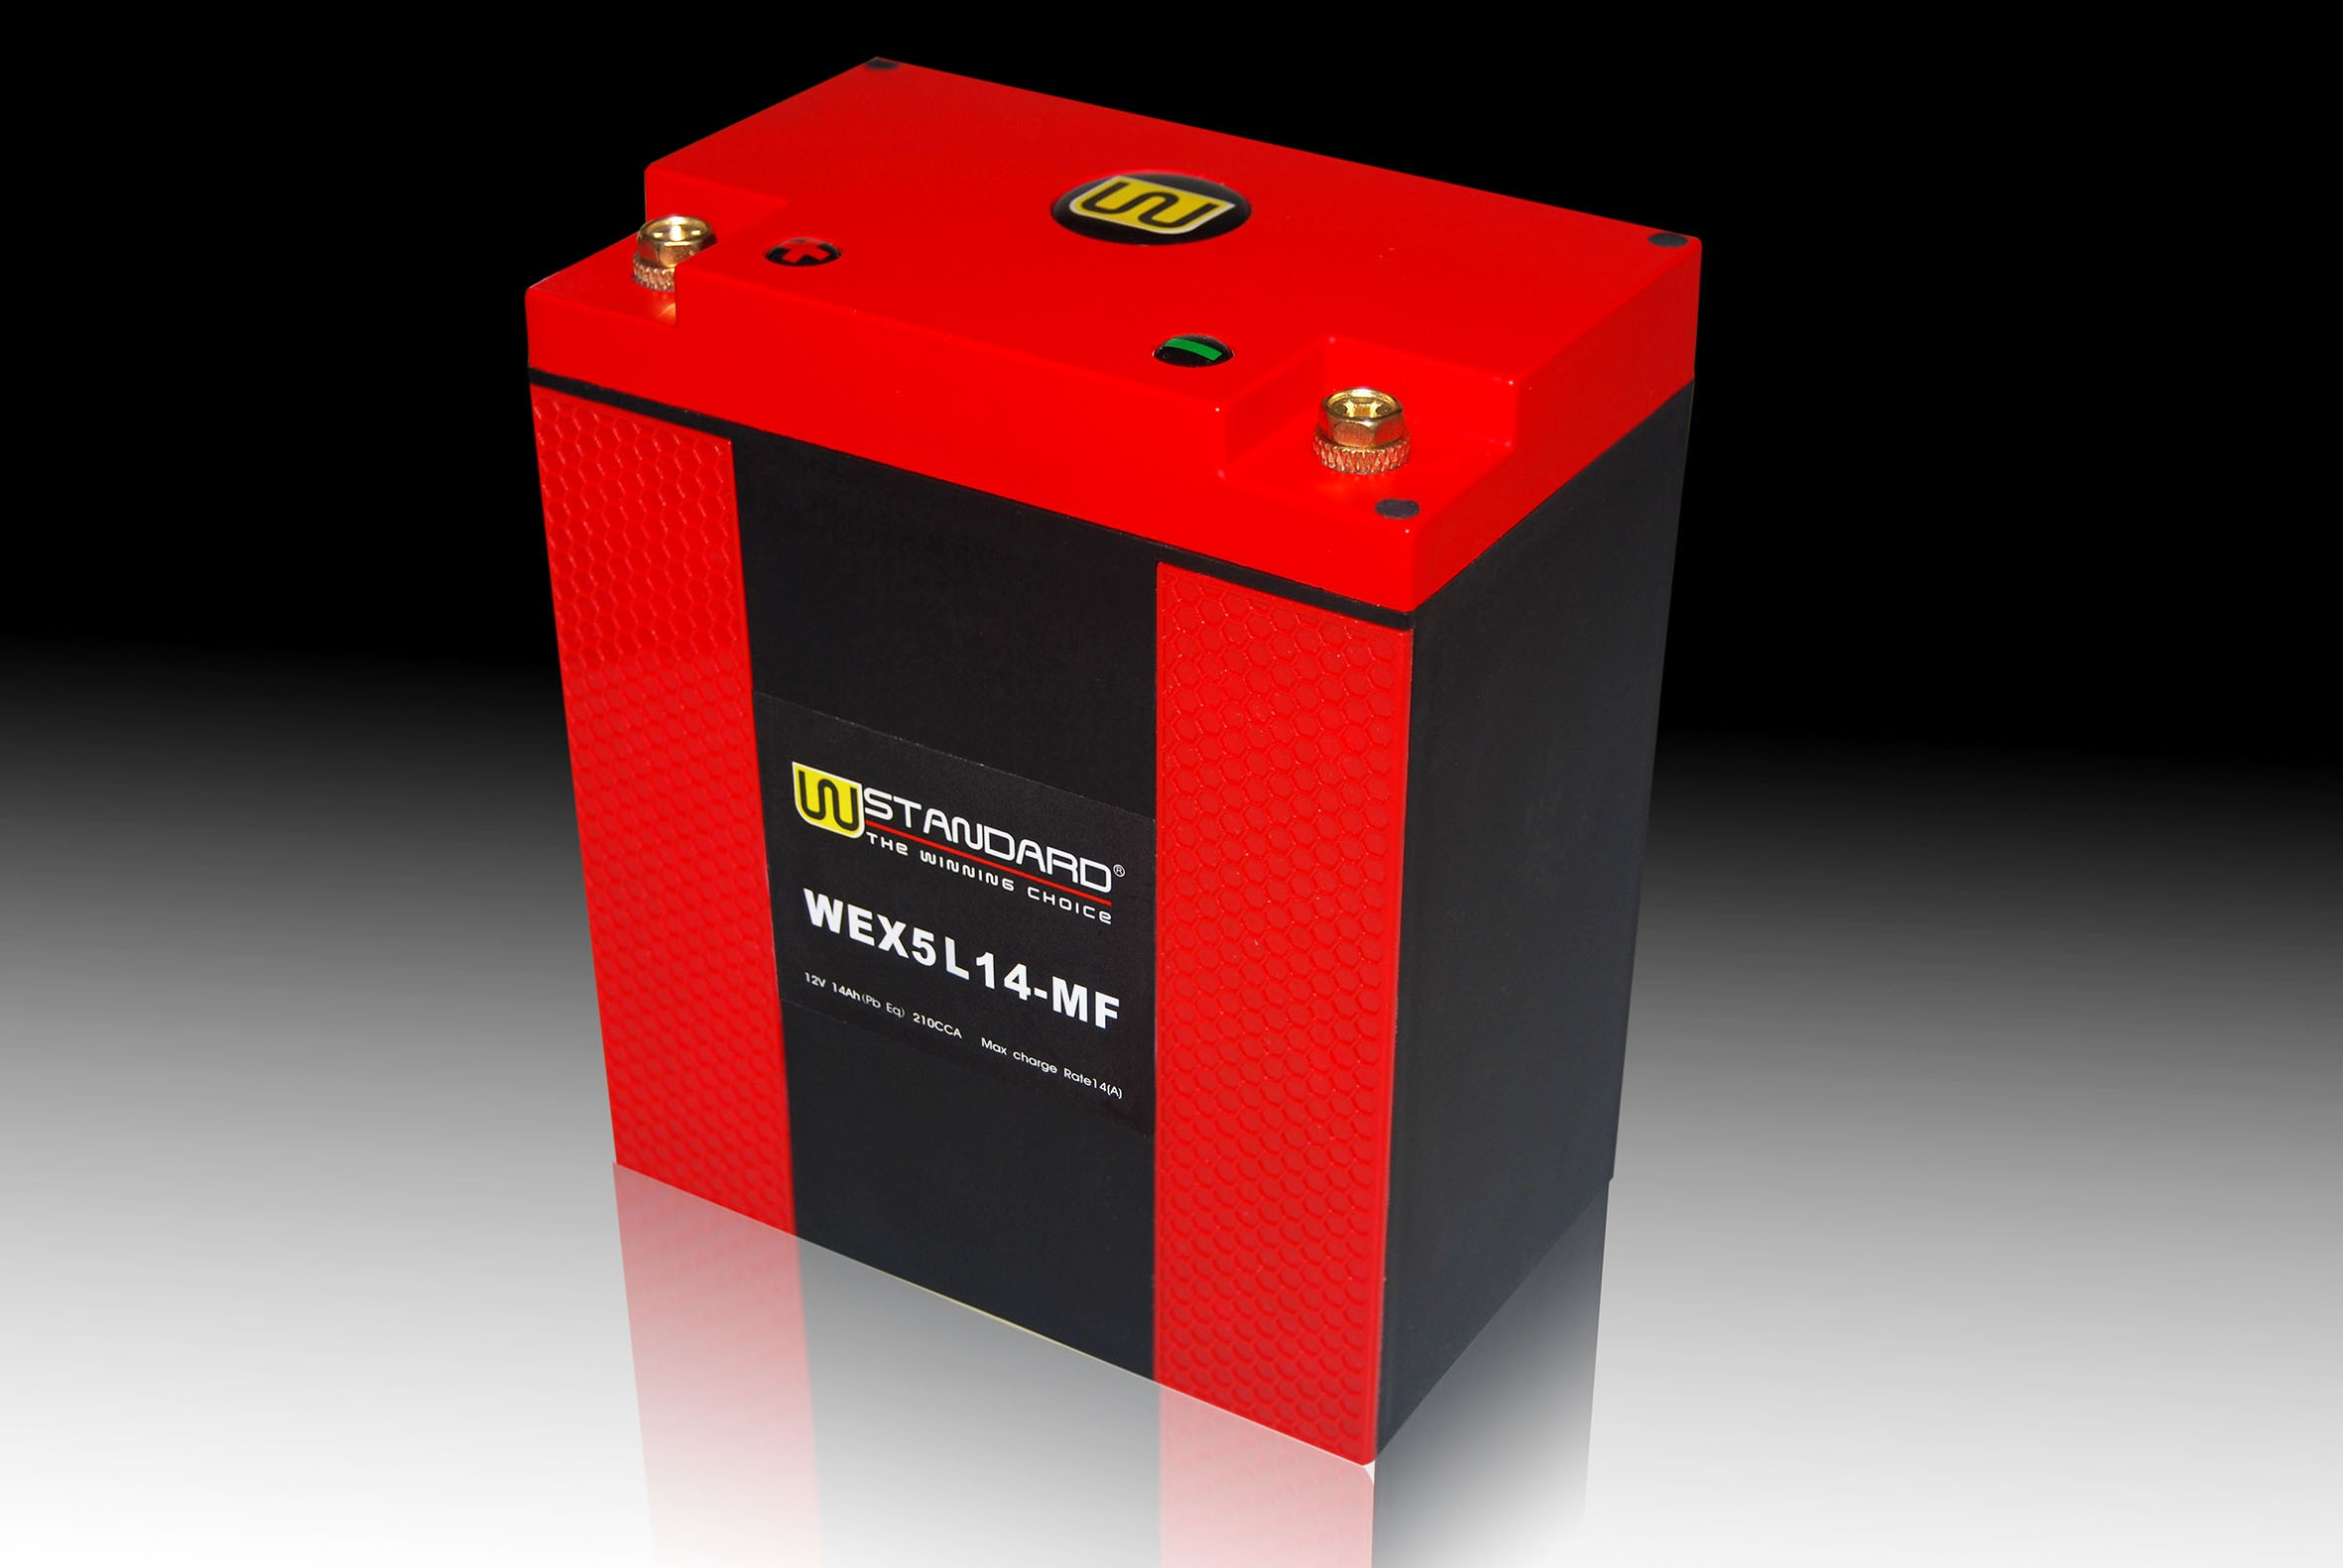 06-W-STANDARD Motorcycle lithium battery WEX5L14-MF Start the power supply 14Ah